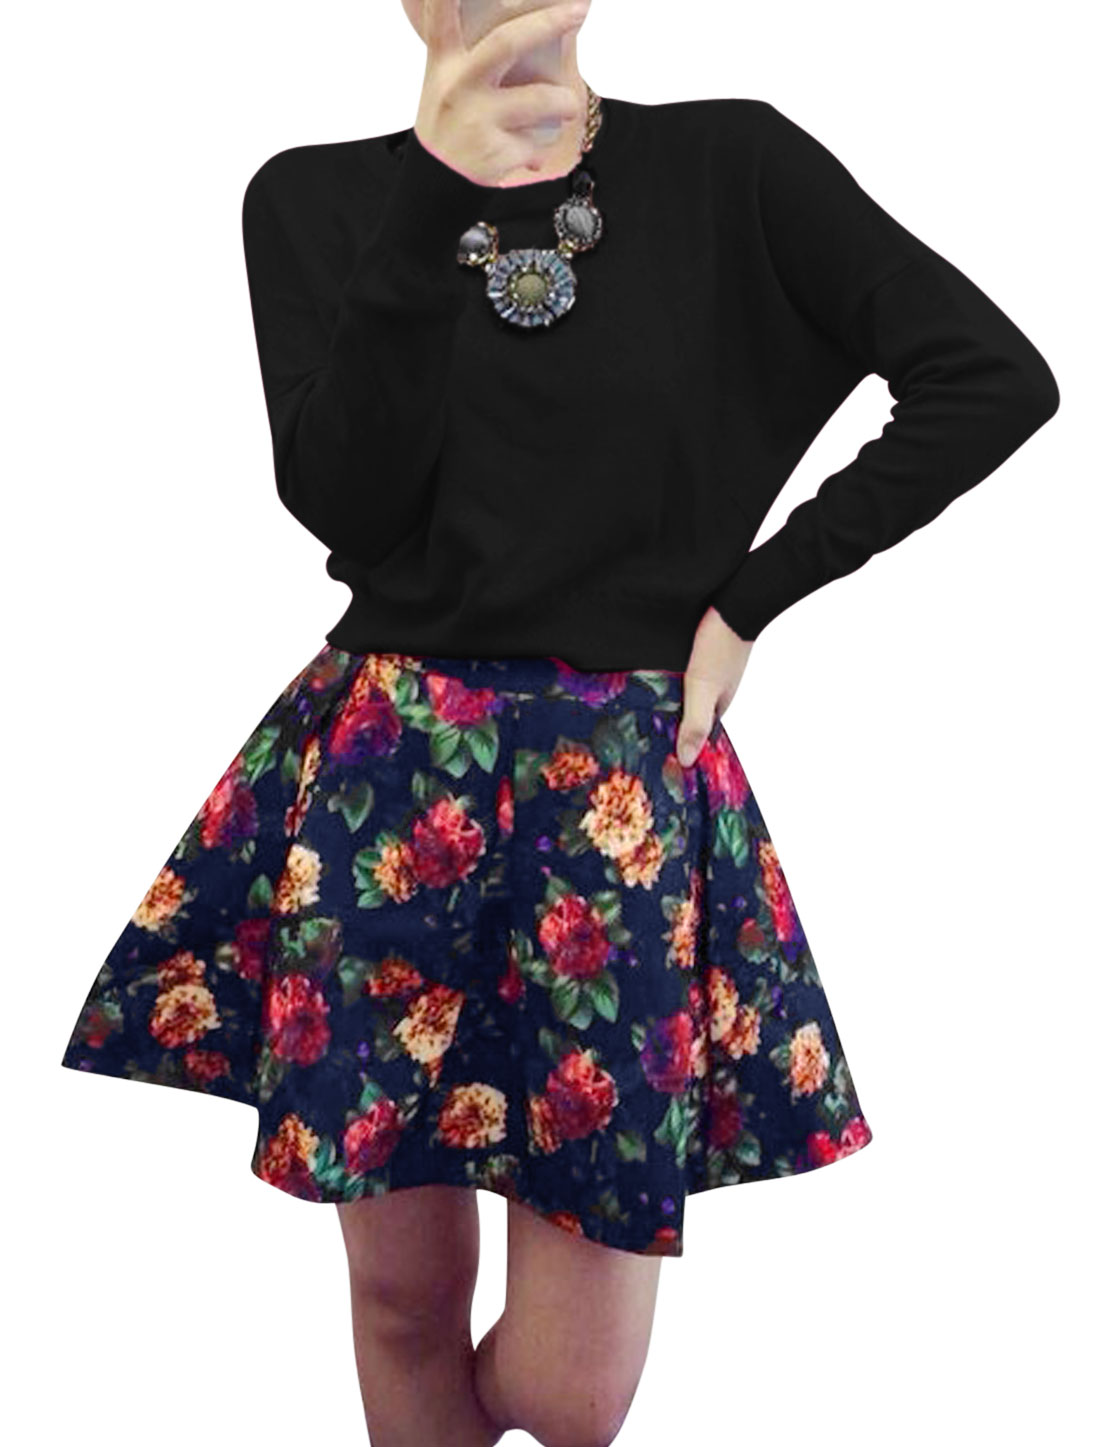 Lady Black Ruched Detail Pullover Top w Floral Prints Mid Rise Skirt Set XS